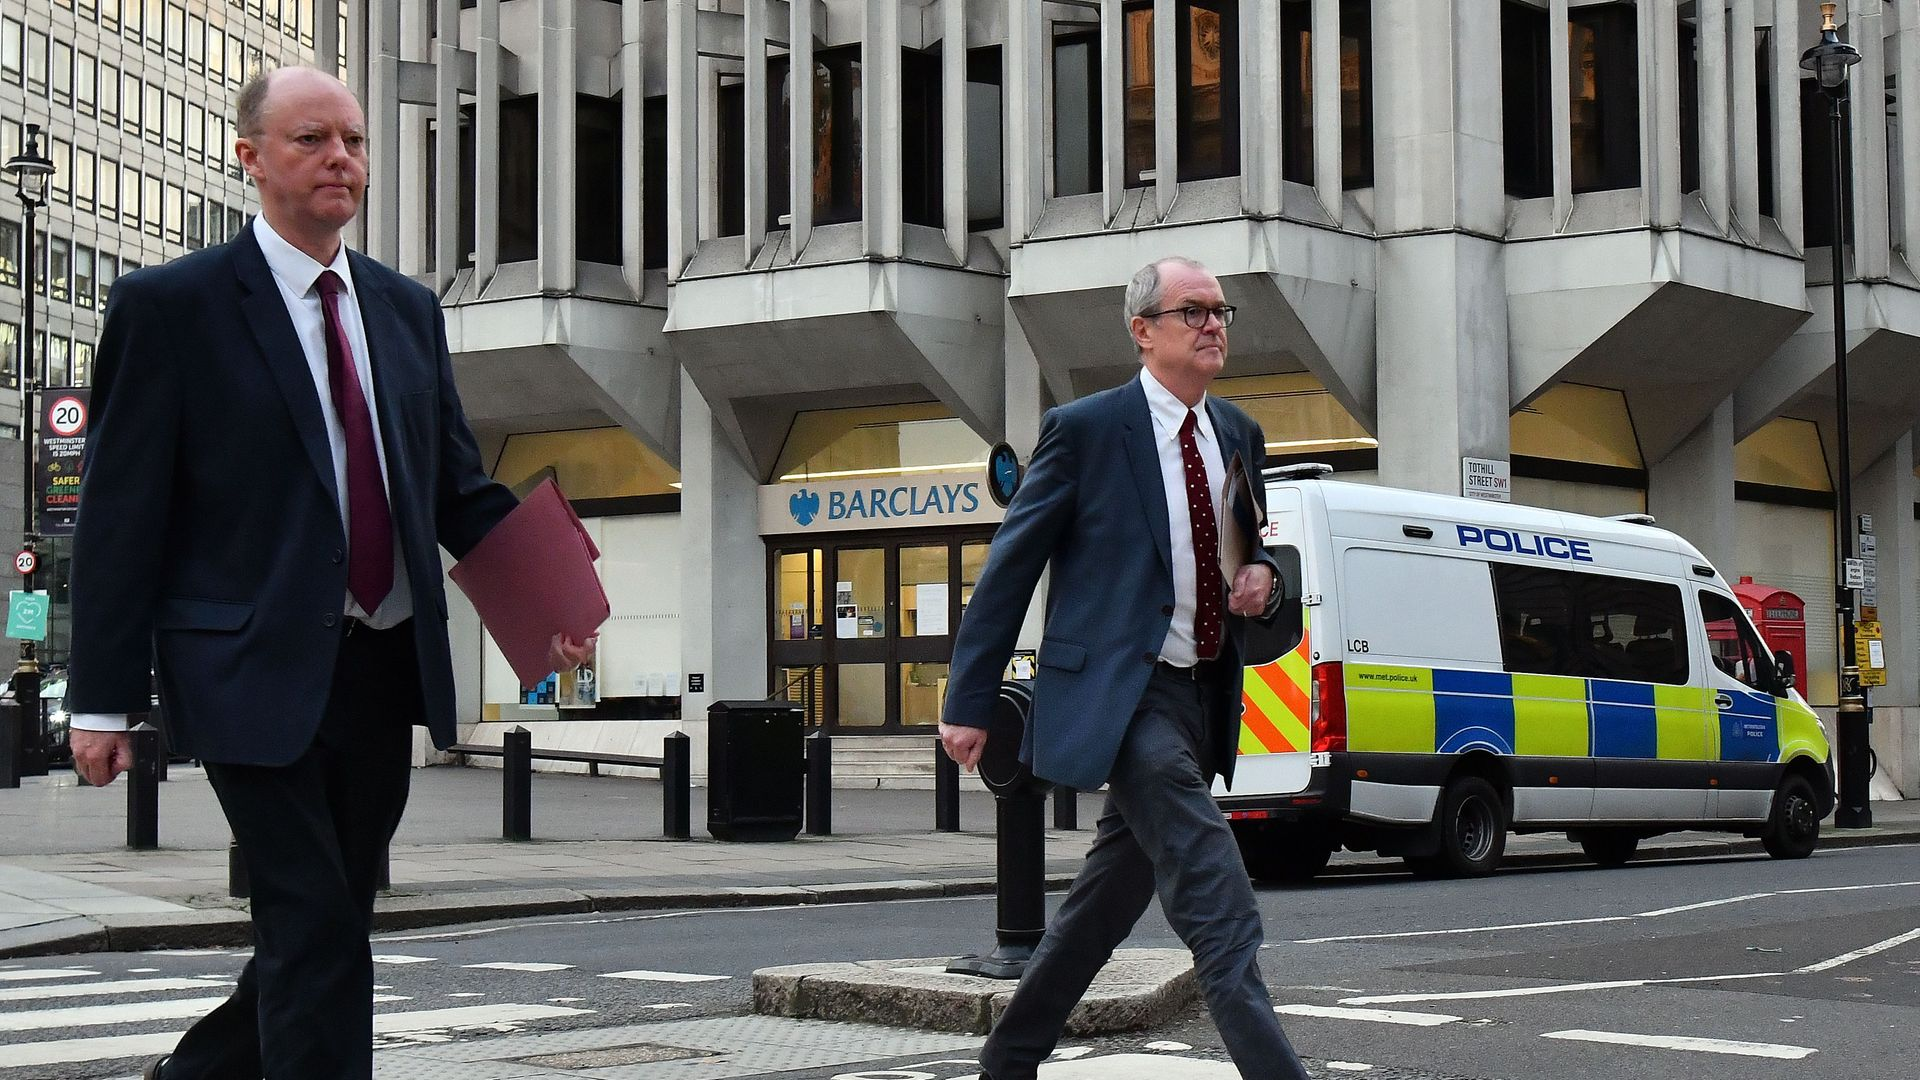 Chief Medical Officer Professor Chris Whitty (L) and Chief Scientific Adviser Sir Patrick Vallance on their way to Downing Street - Credit: Photo by JUSTIN TALLIS/AFP via Getty Images